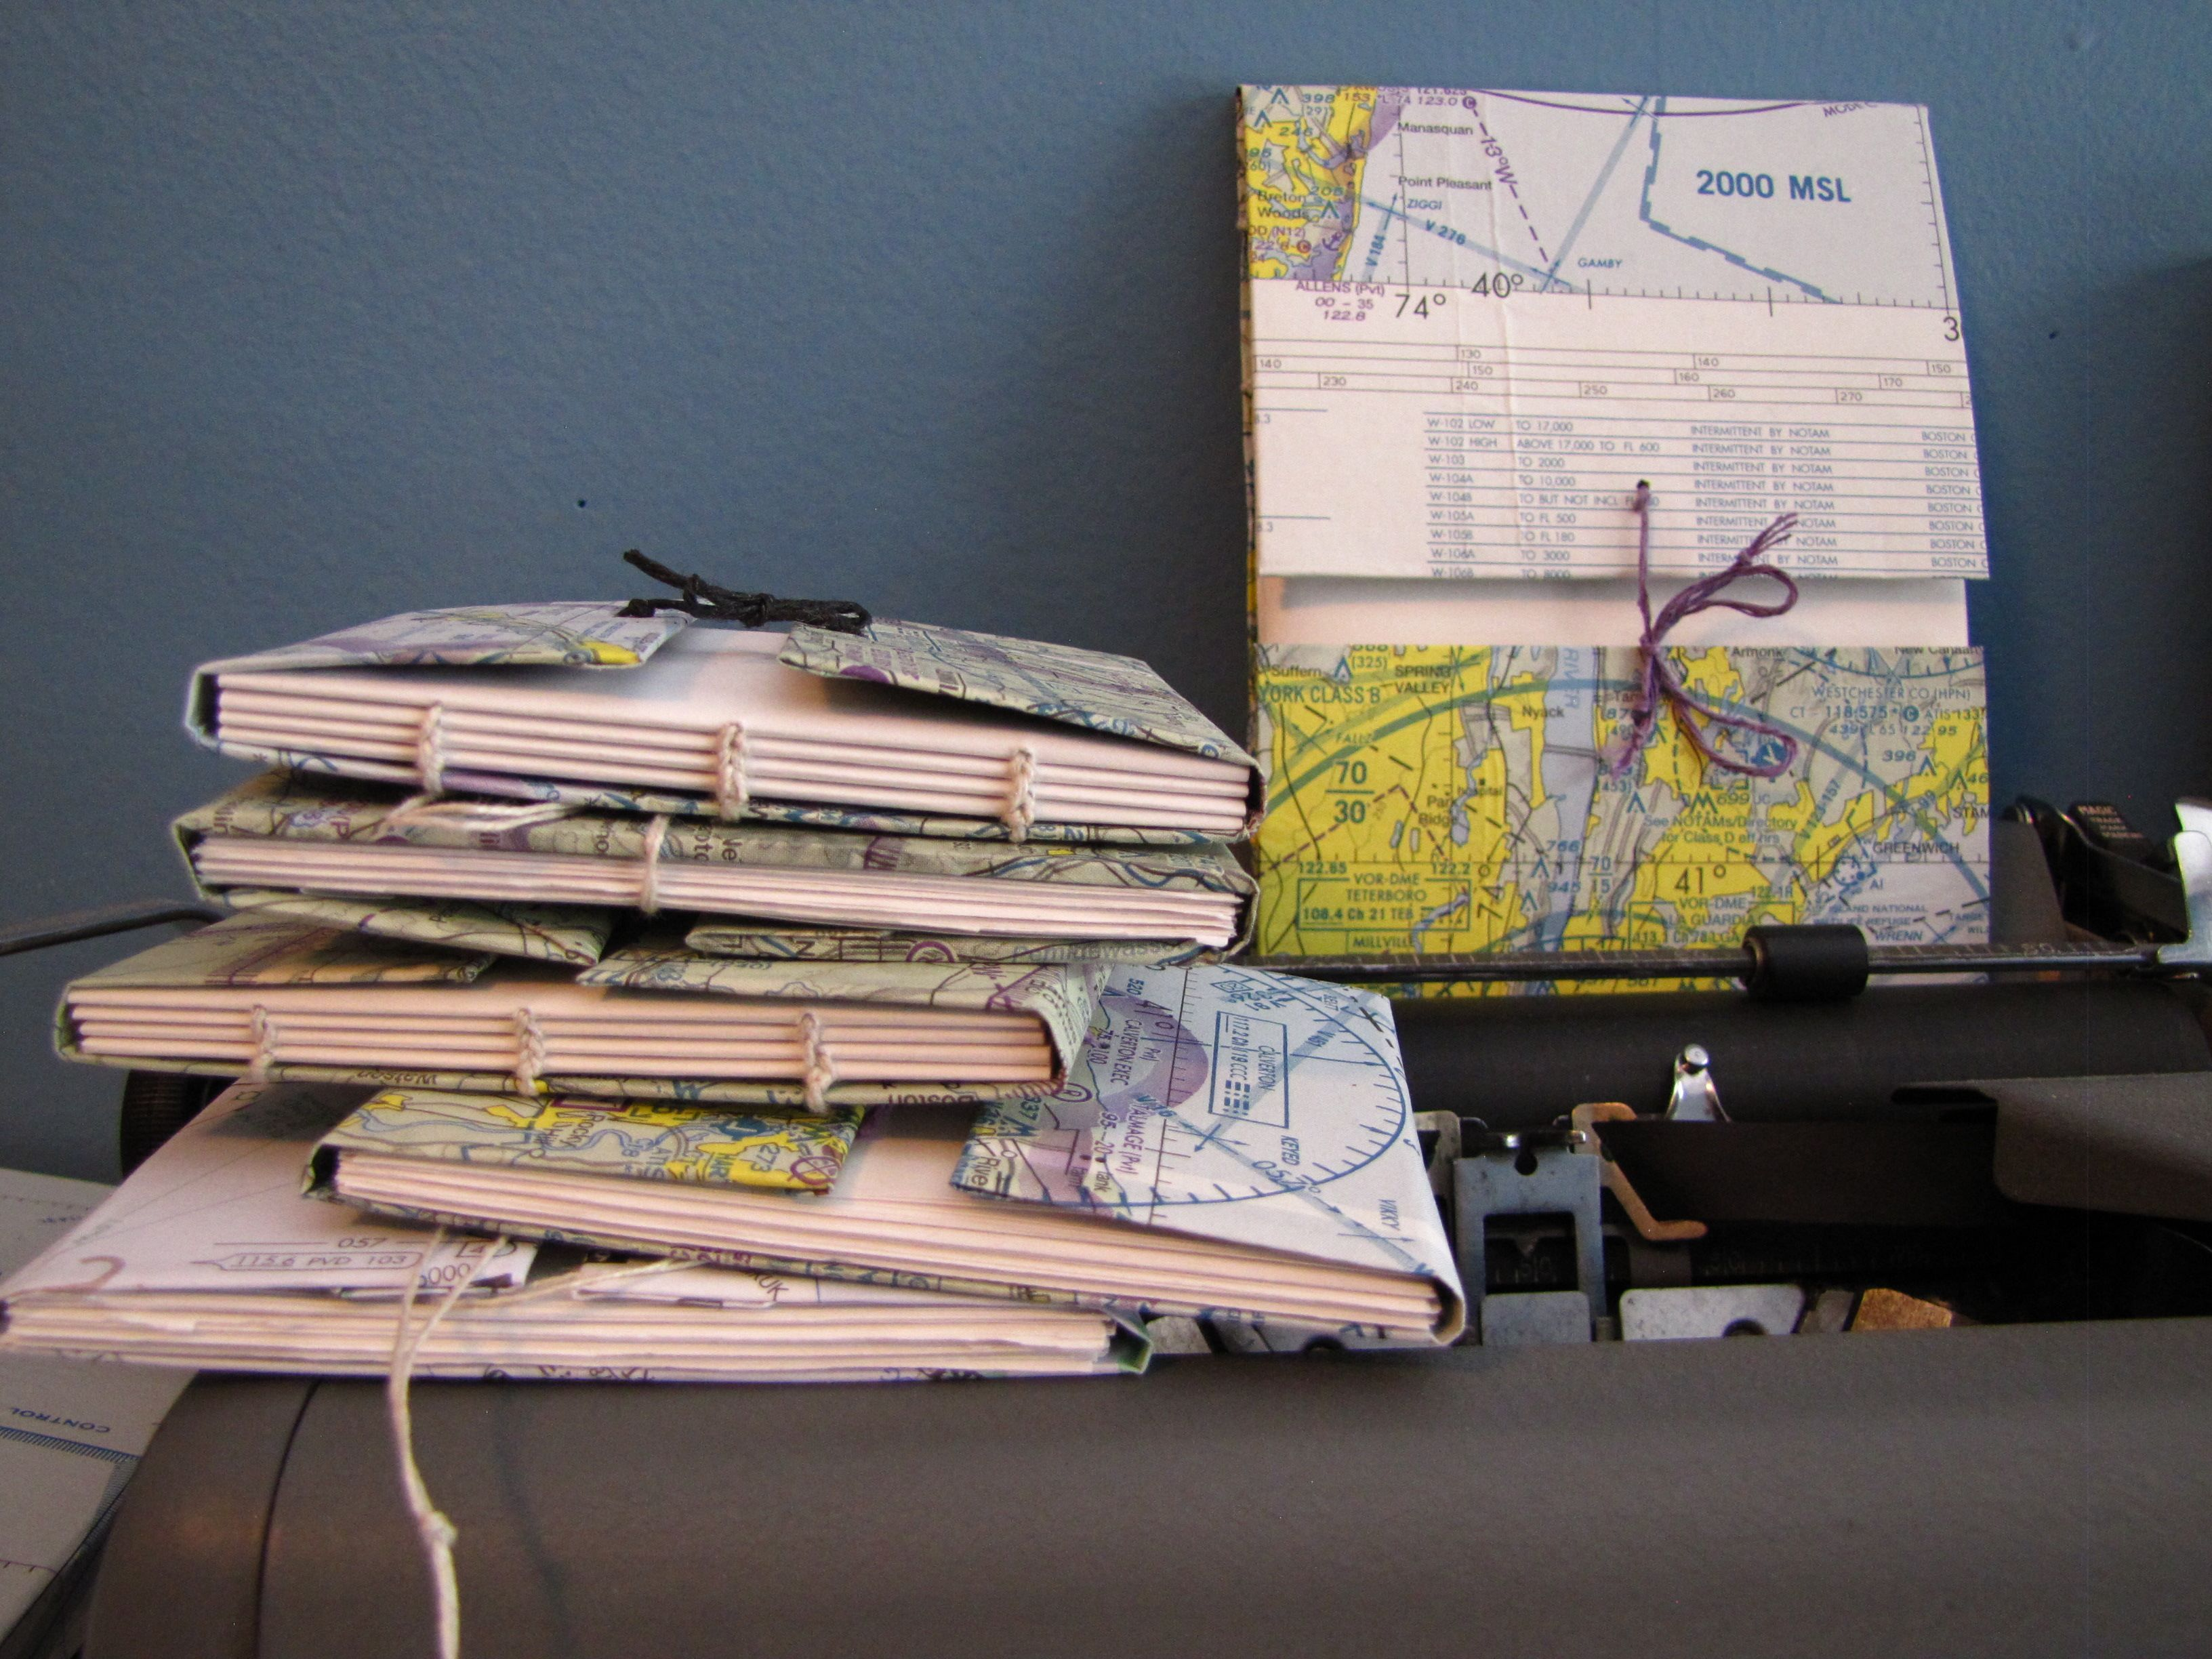 Mini Pocket Size Sketchbooks Covered With Outdated Aeronautical